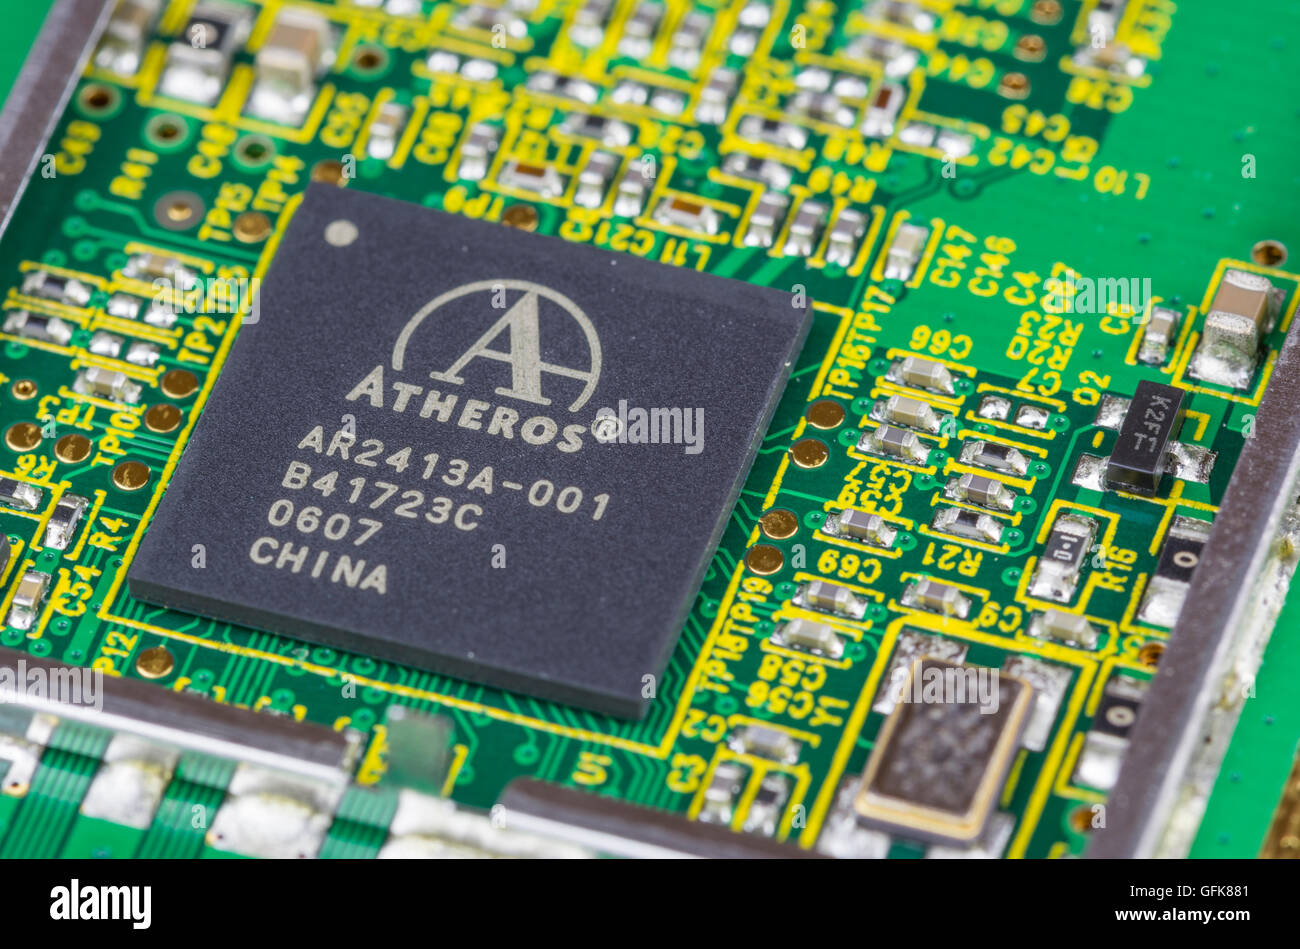 Printed Circuit Board Stock Photos Assembly Pcba China Electronic And Digital Atheros Microchip On A Image